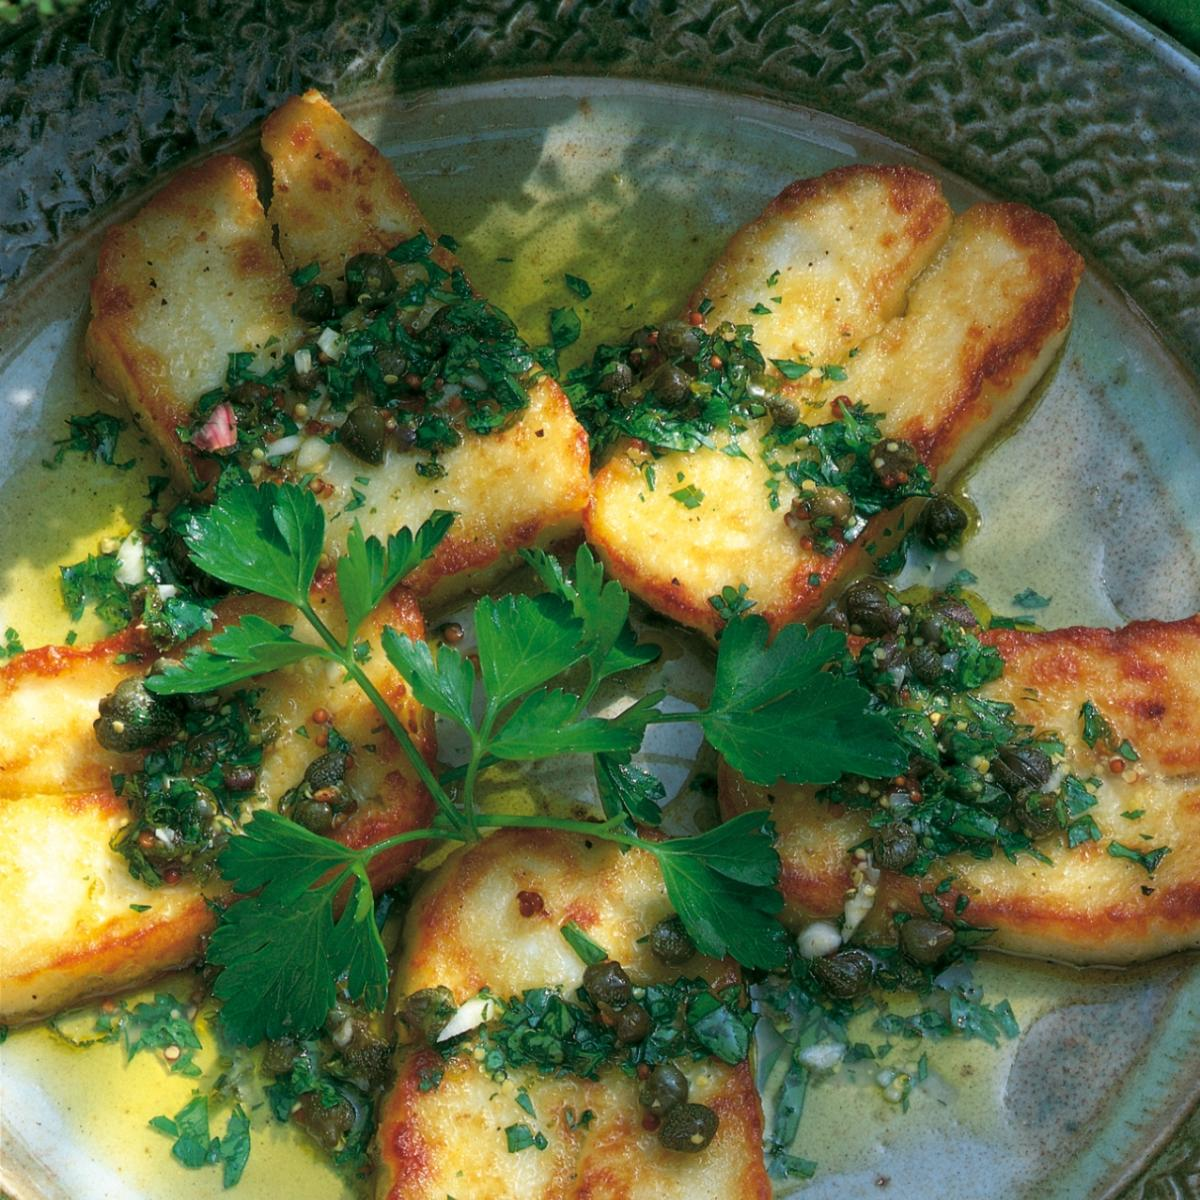 A picture of Delia's Fried Halloumi Cheese with Lime and Caper Vinaigrette recipe